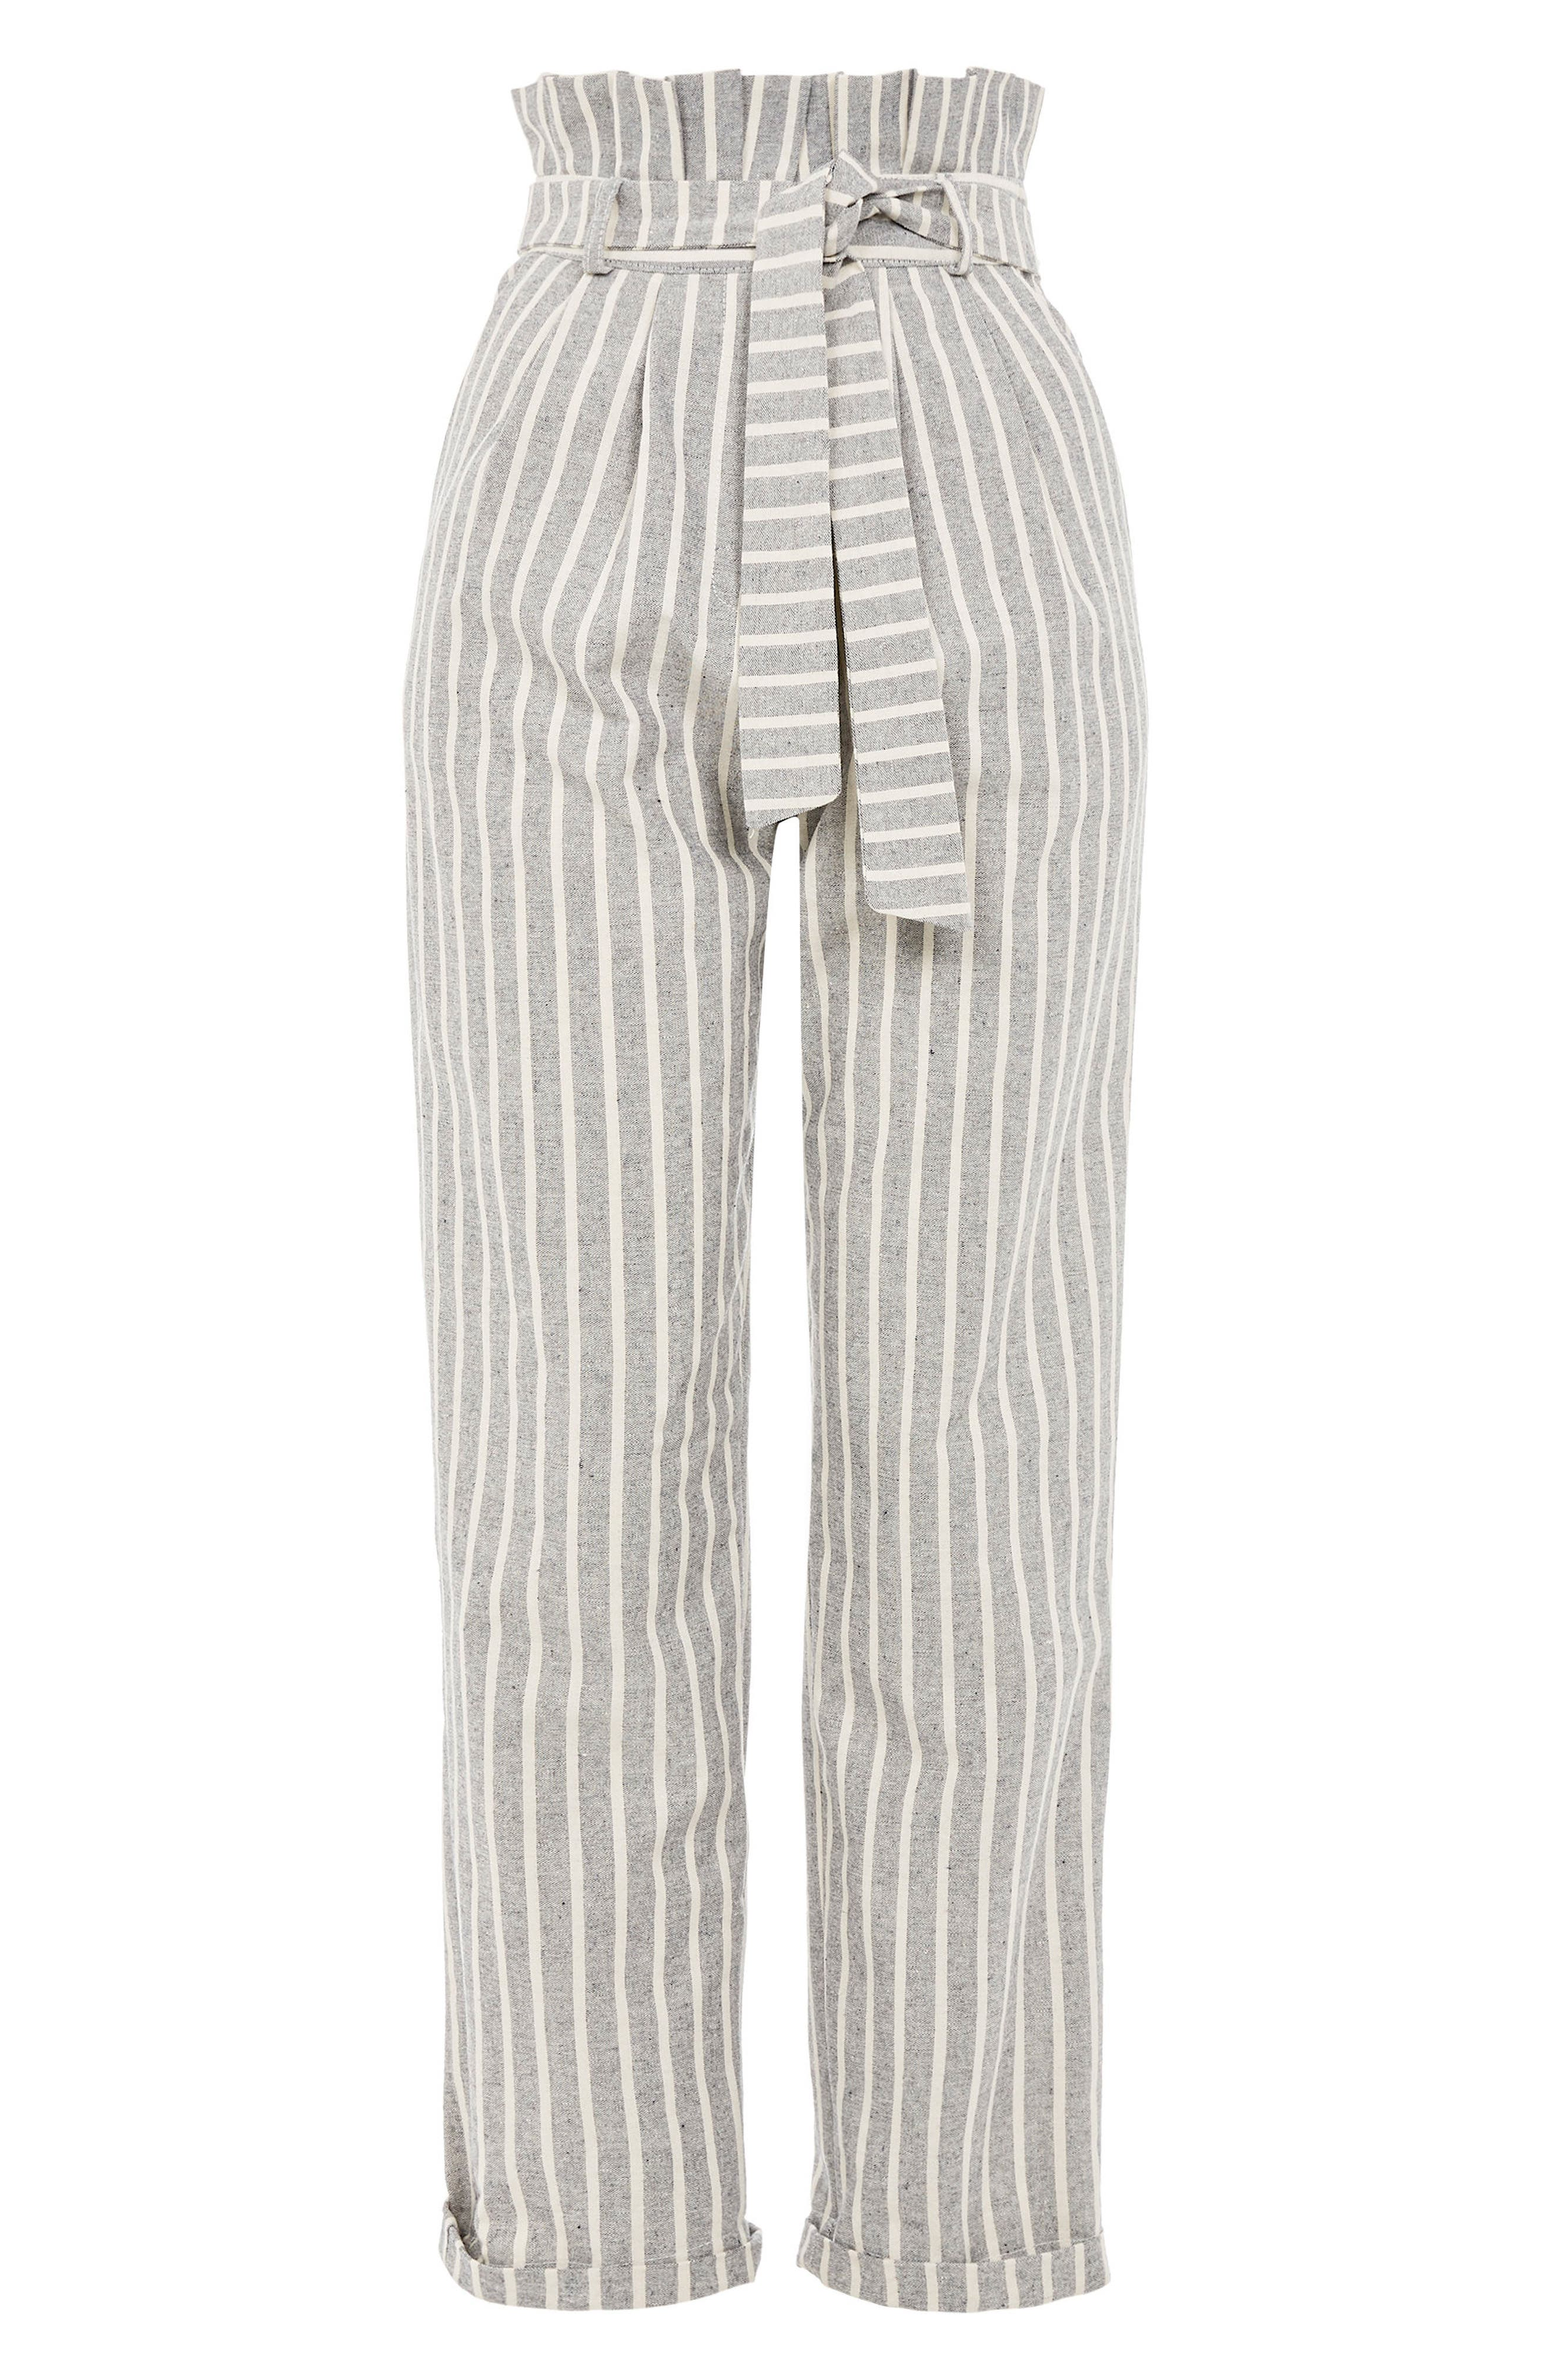 Belted Stripe Roll-Cuff Trousers,                             Alternate thumbnail 4, color,                             400